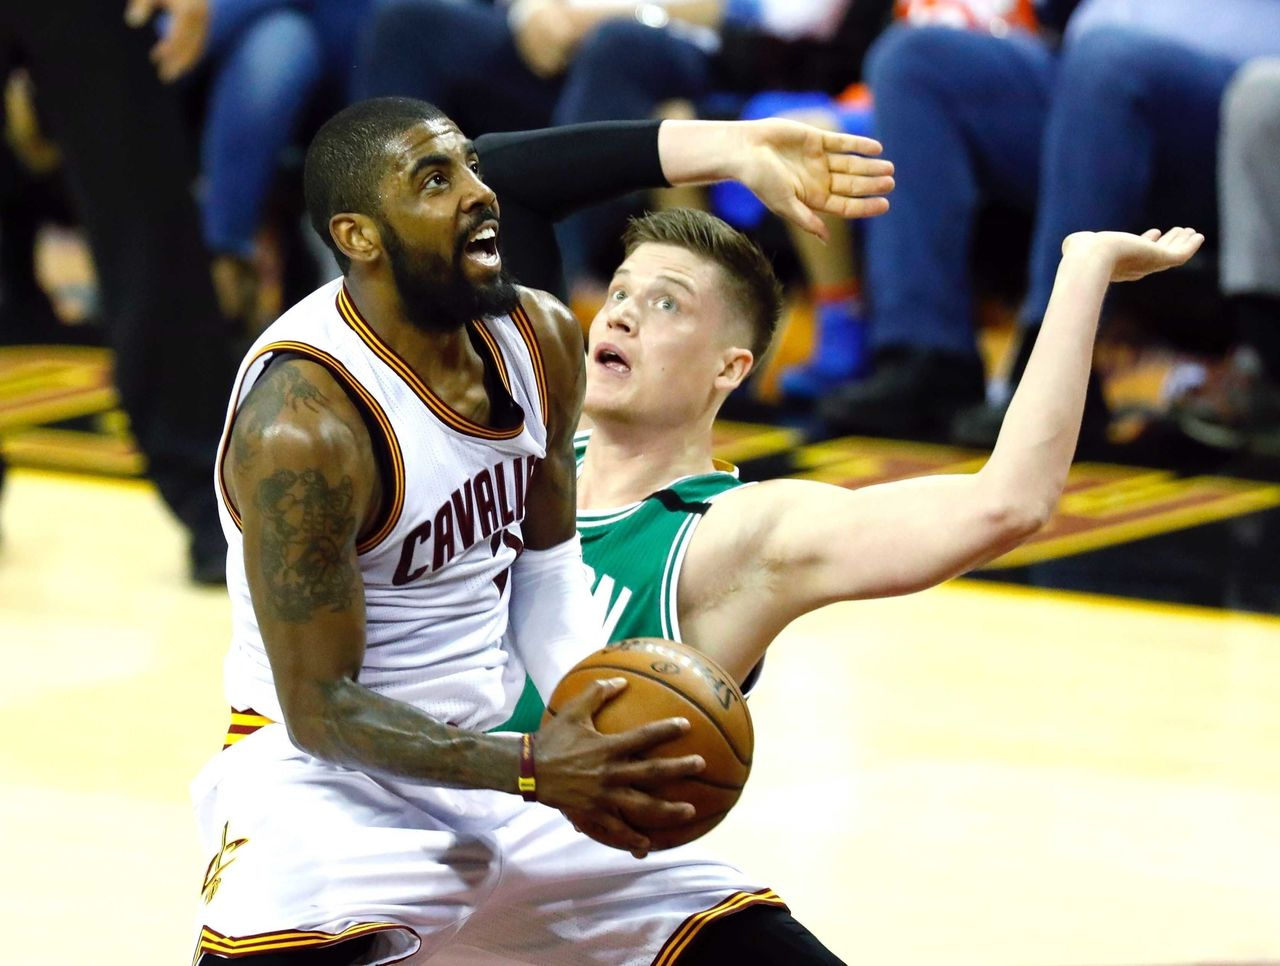 Cropped 2017 05 22t033207z 1498782501 nocid rtrmadp 3 nba playoffs boston celtics at cleveland cavaliers